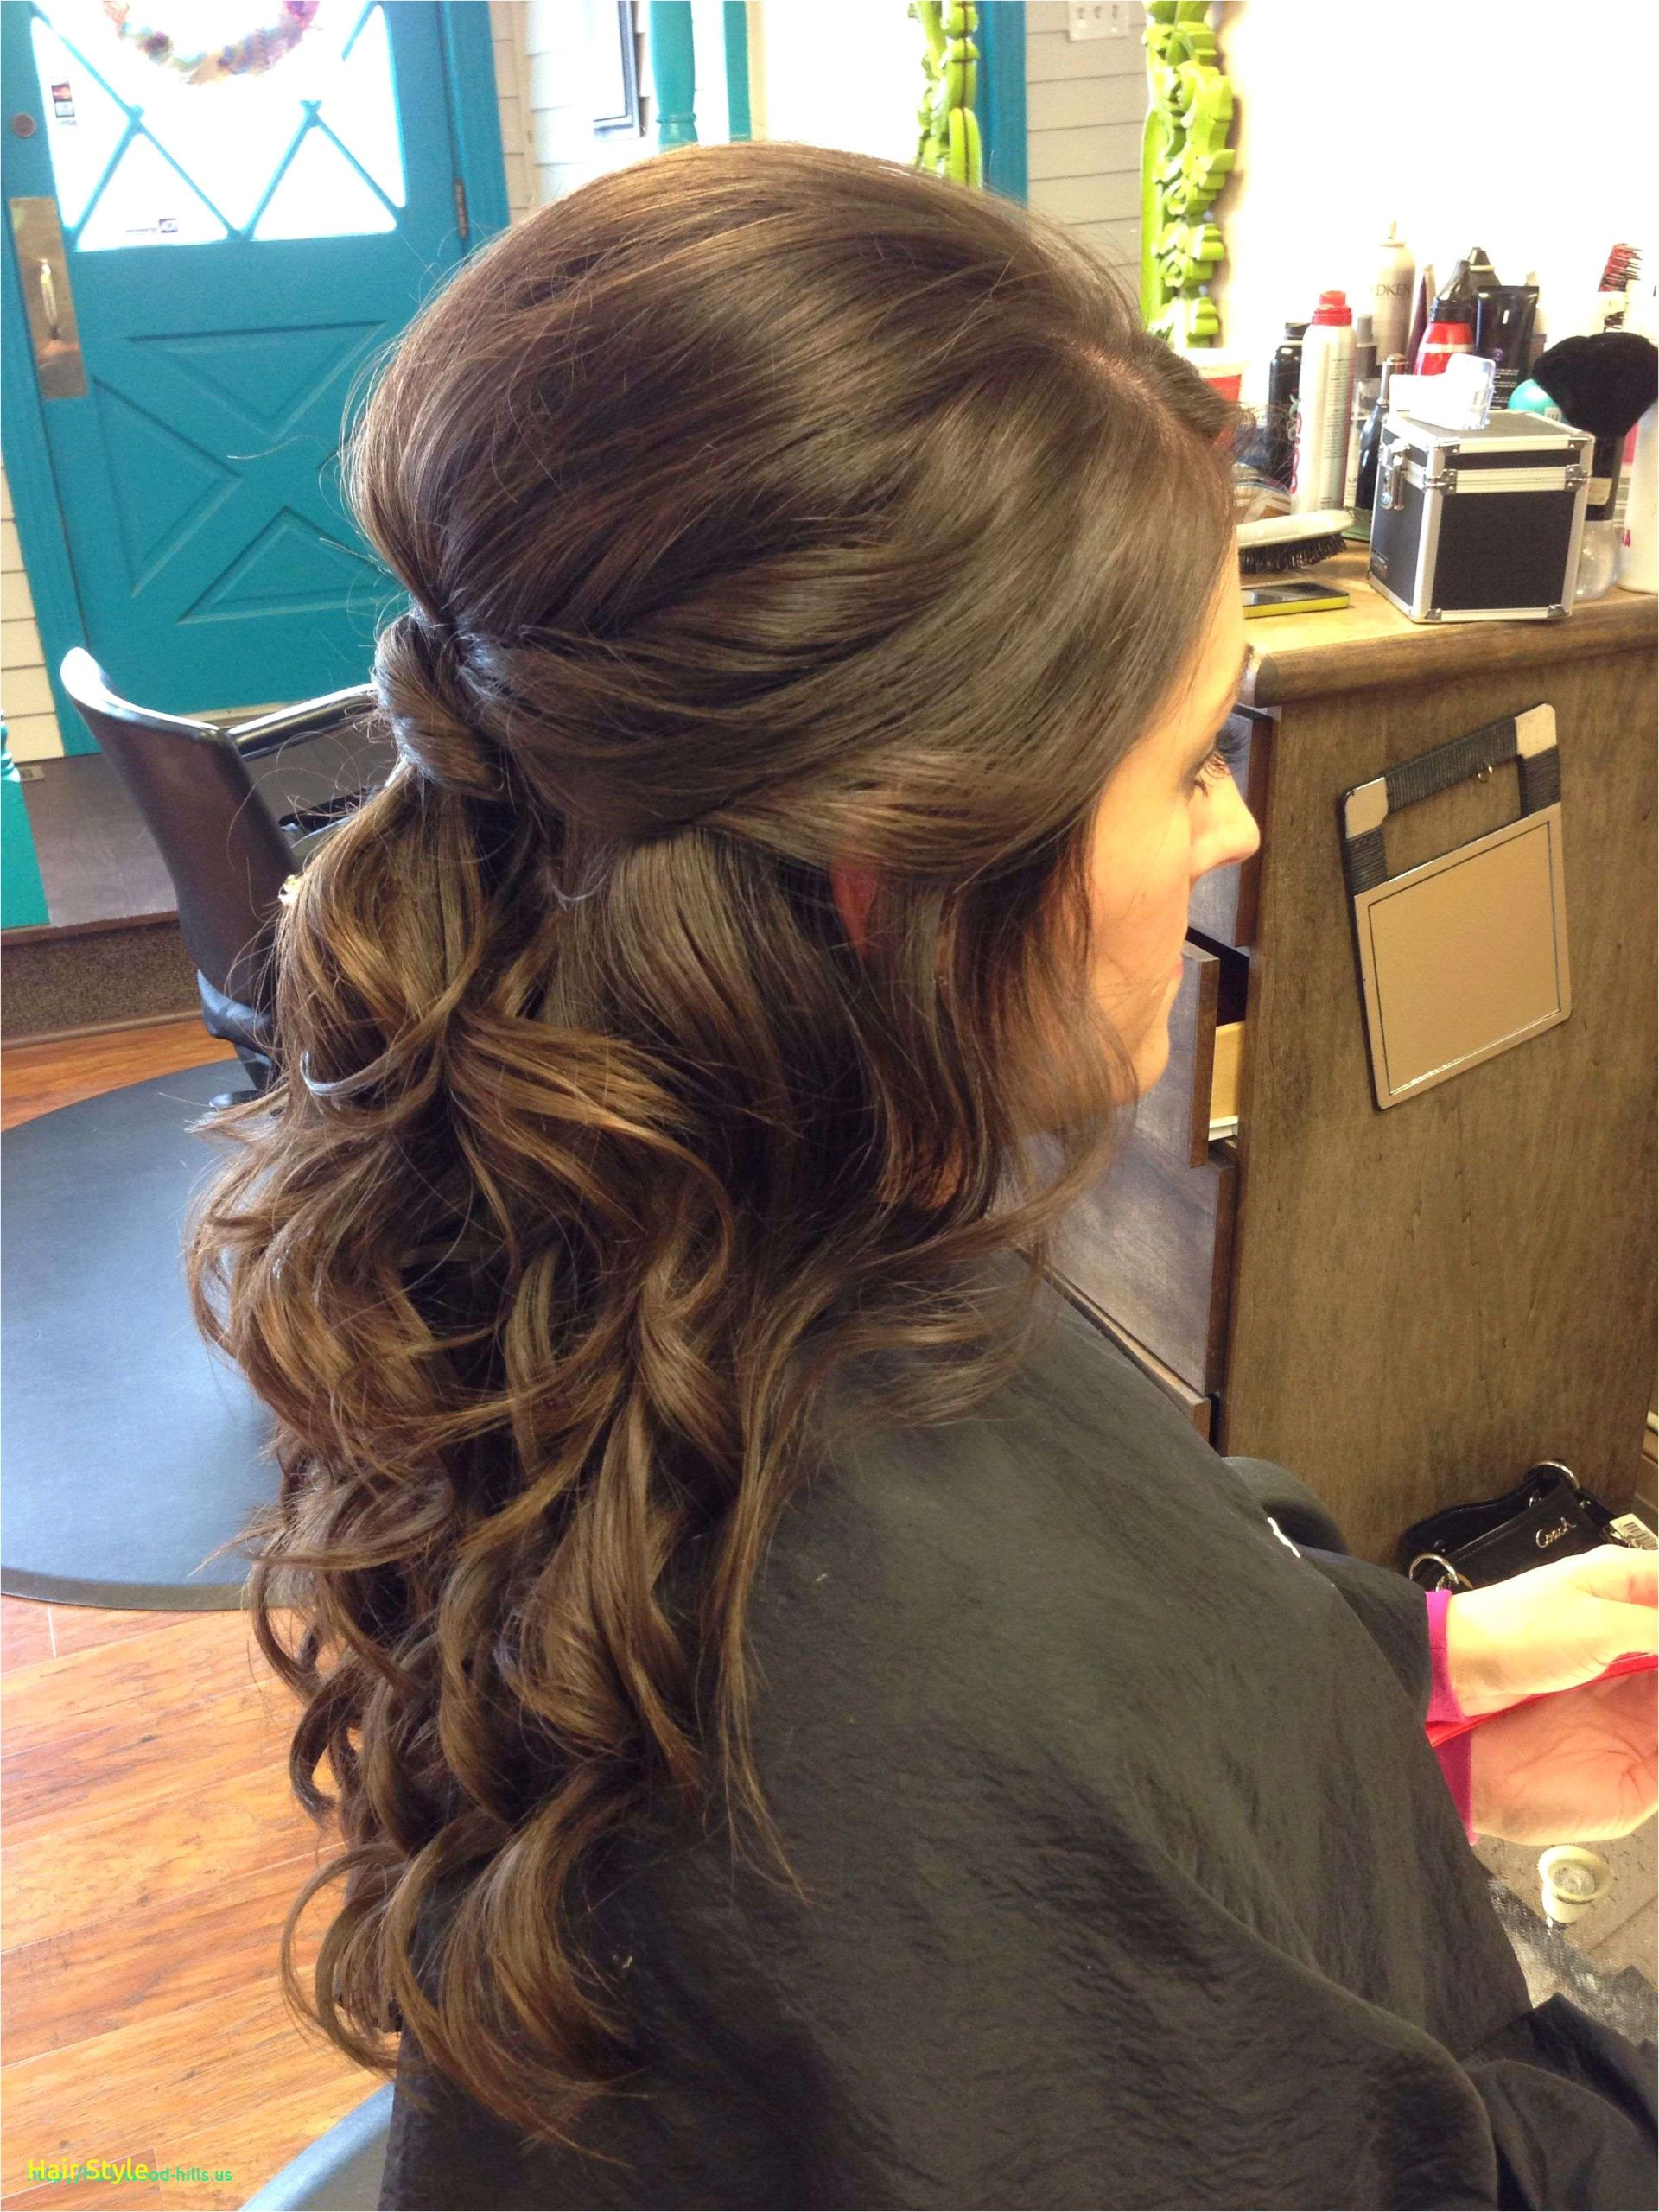 5 minute hairstyles for frizzy hair awesome updo hairstyles for matric farewell curly hair updo wedding pics of 5 minute hairstyles for frizzy hair jpg